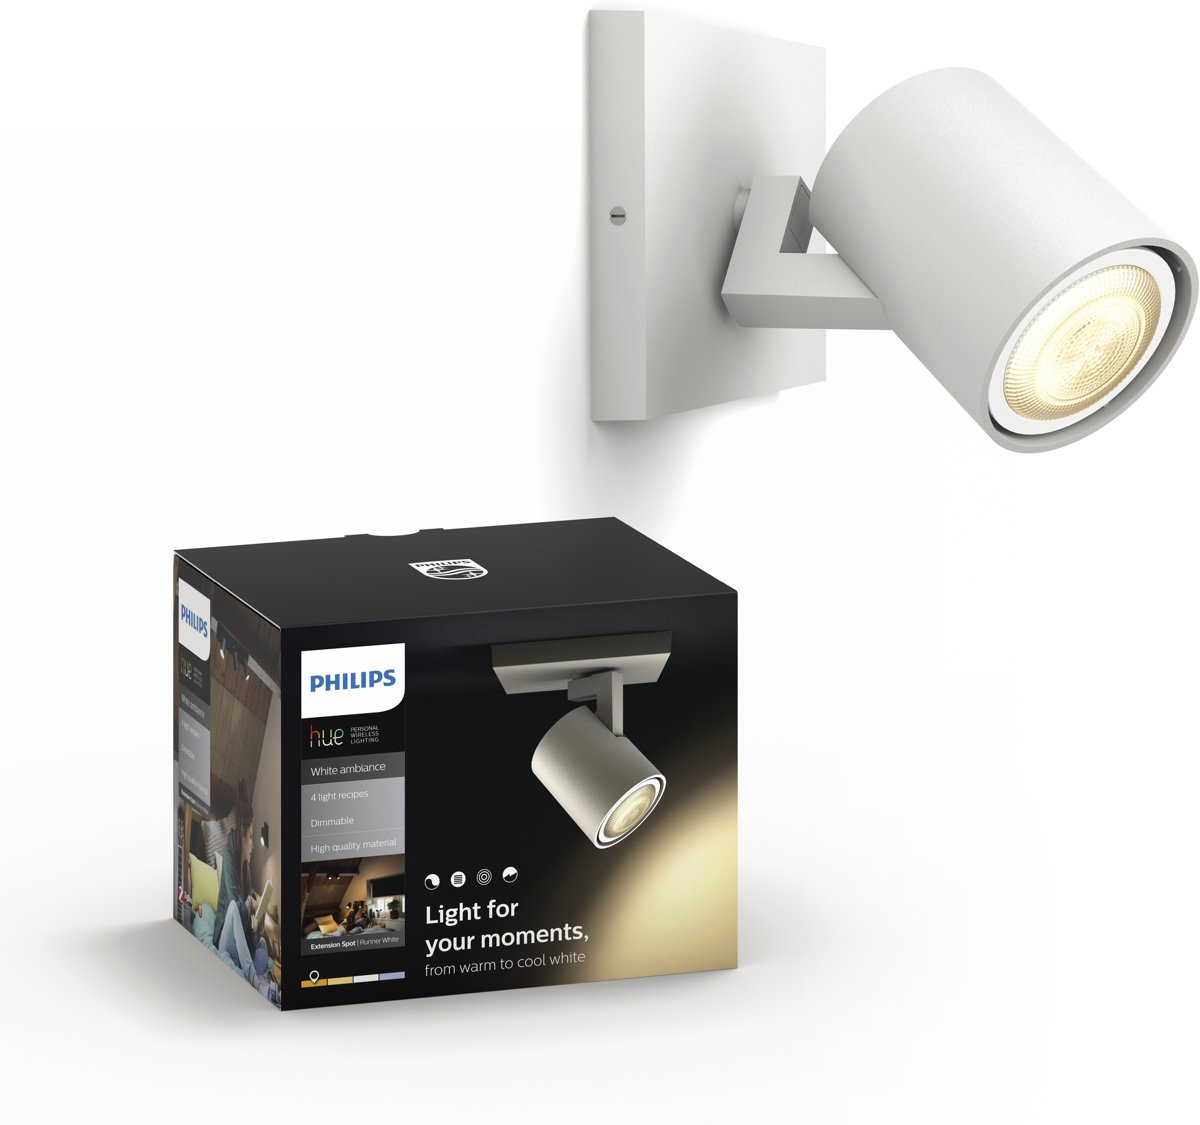 Opbouwspots Keuken Ikea Stekkerspot Ikea Simple Nachtlamp Ansmann Netstroom With